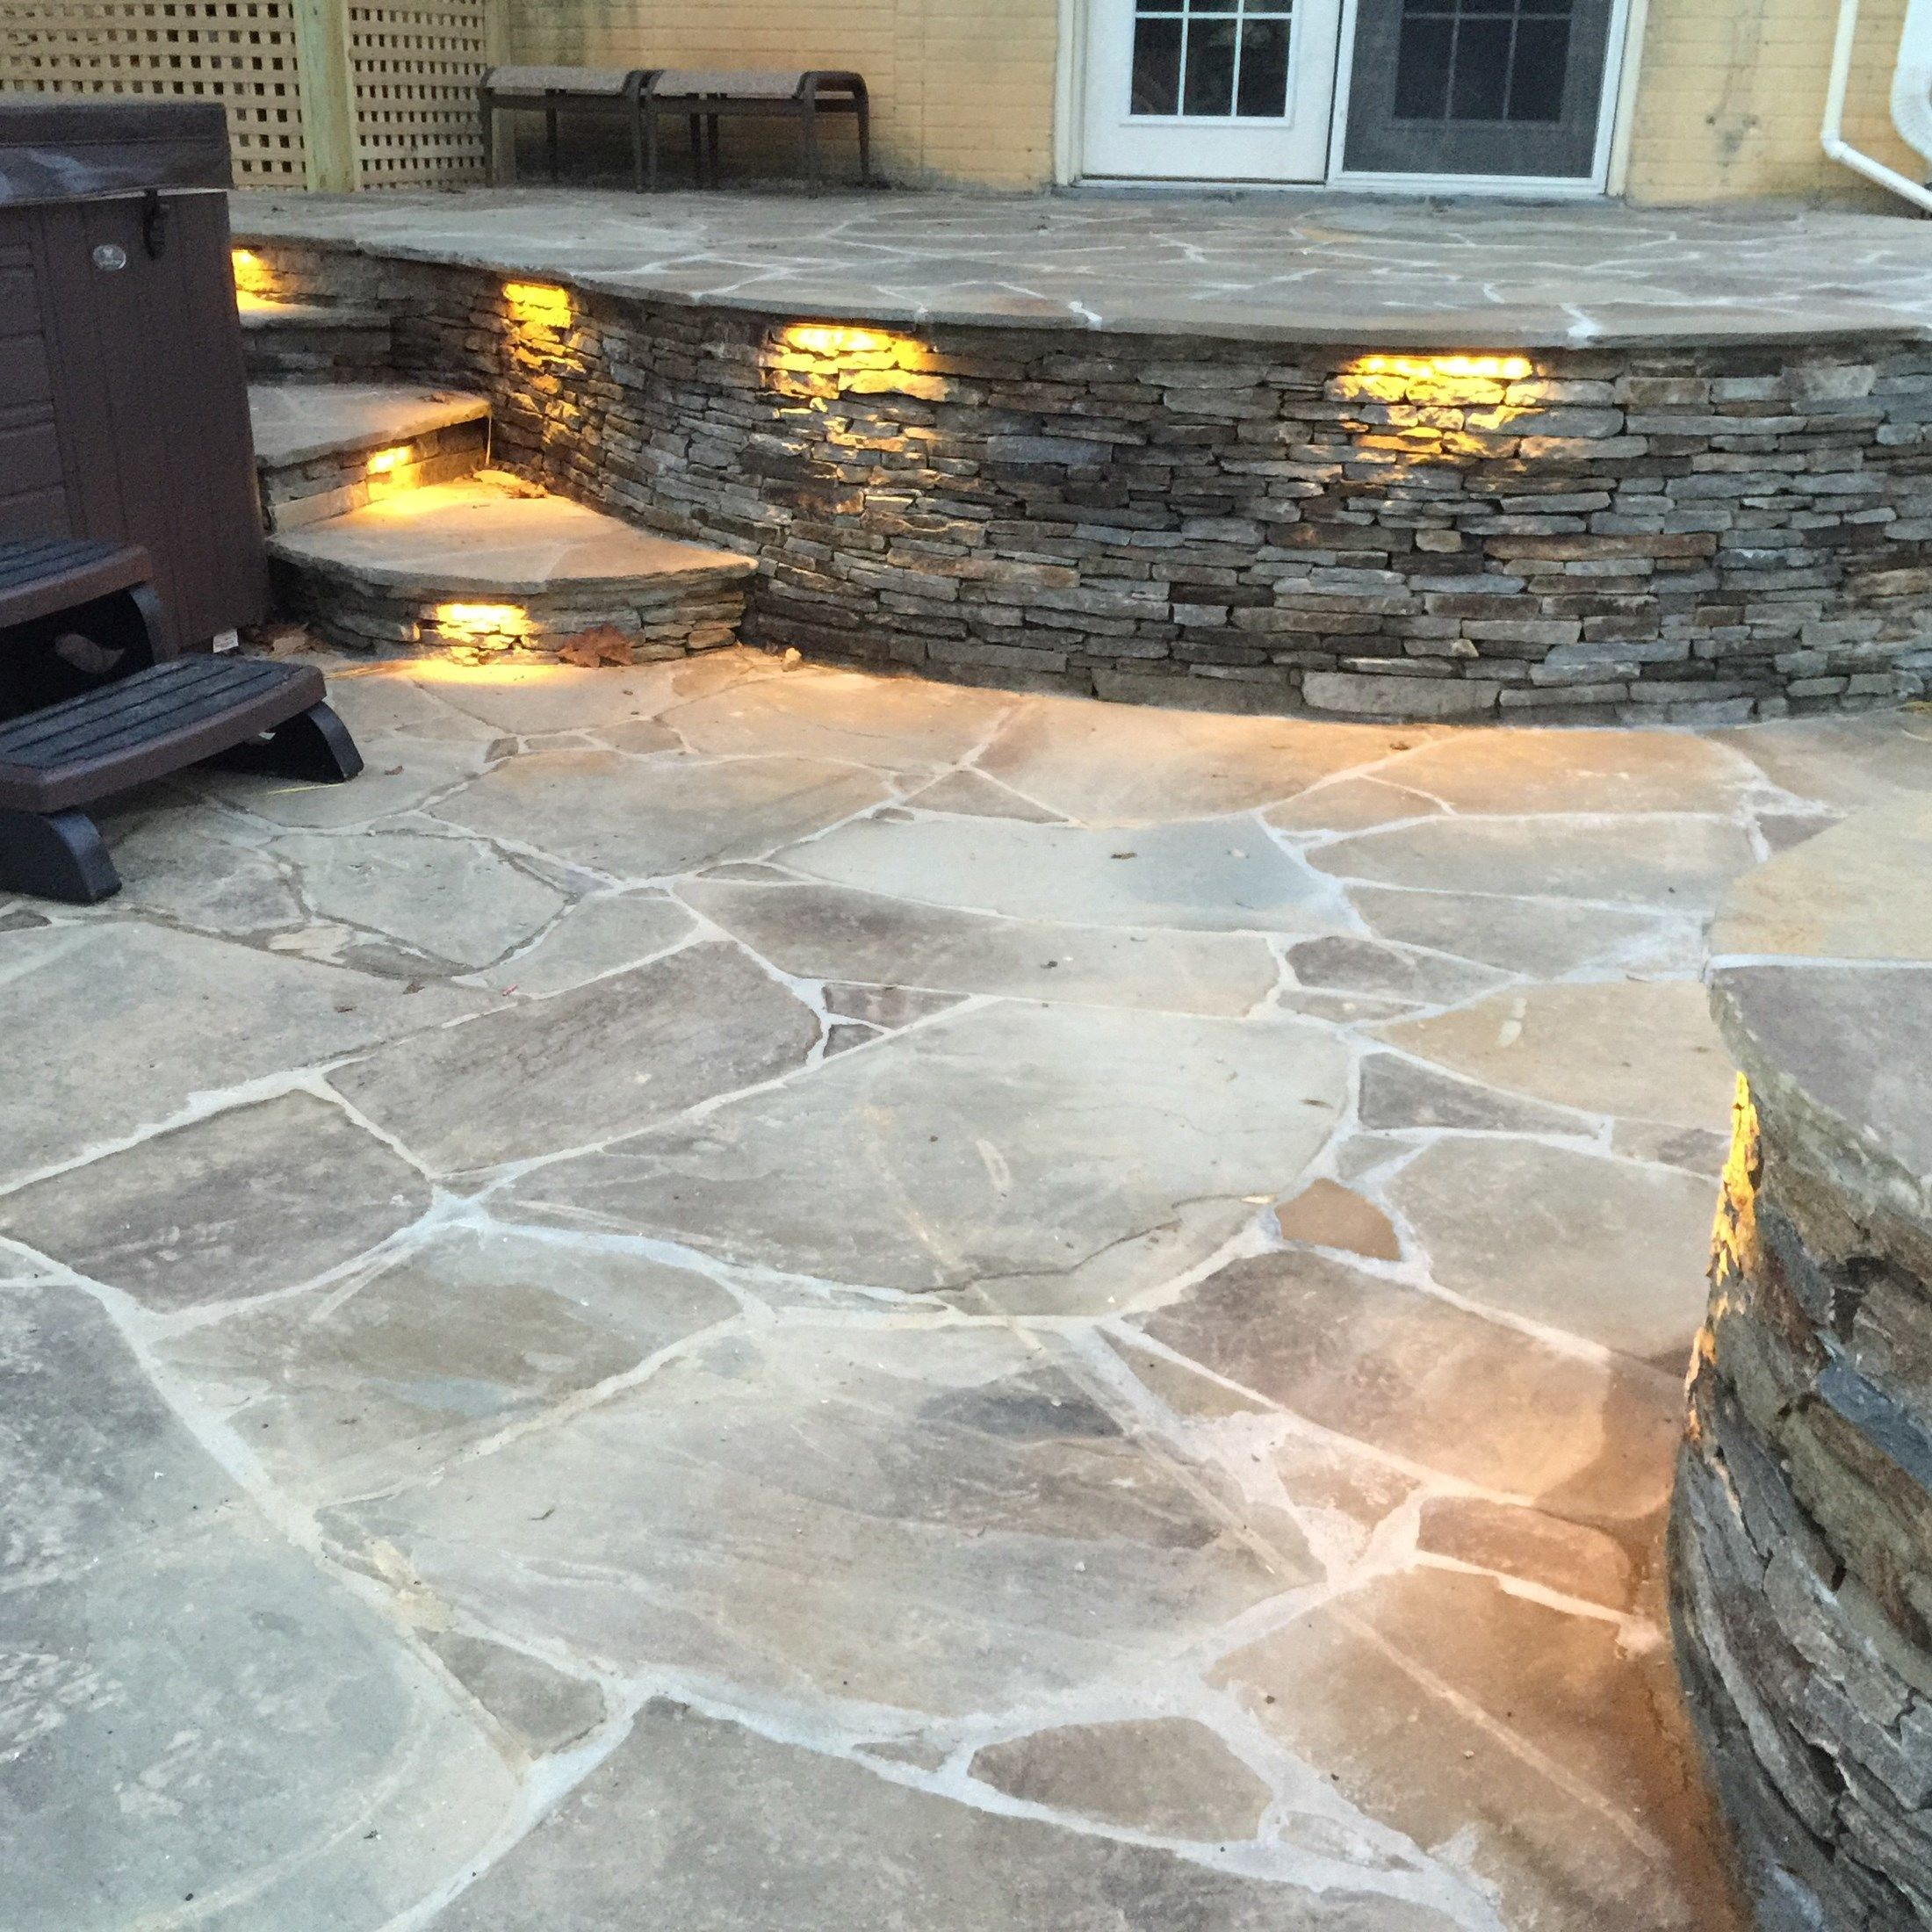 Flagstone patio with Hot tub. - Picture 2025